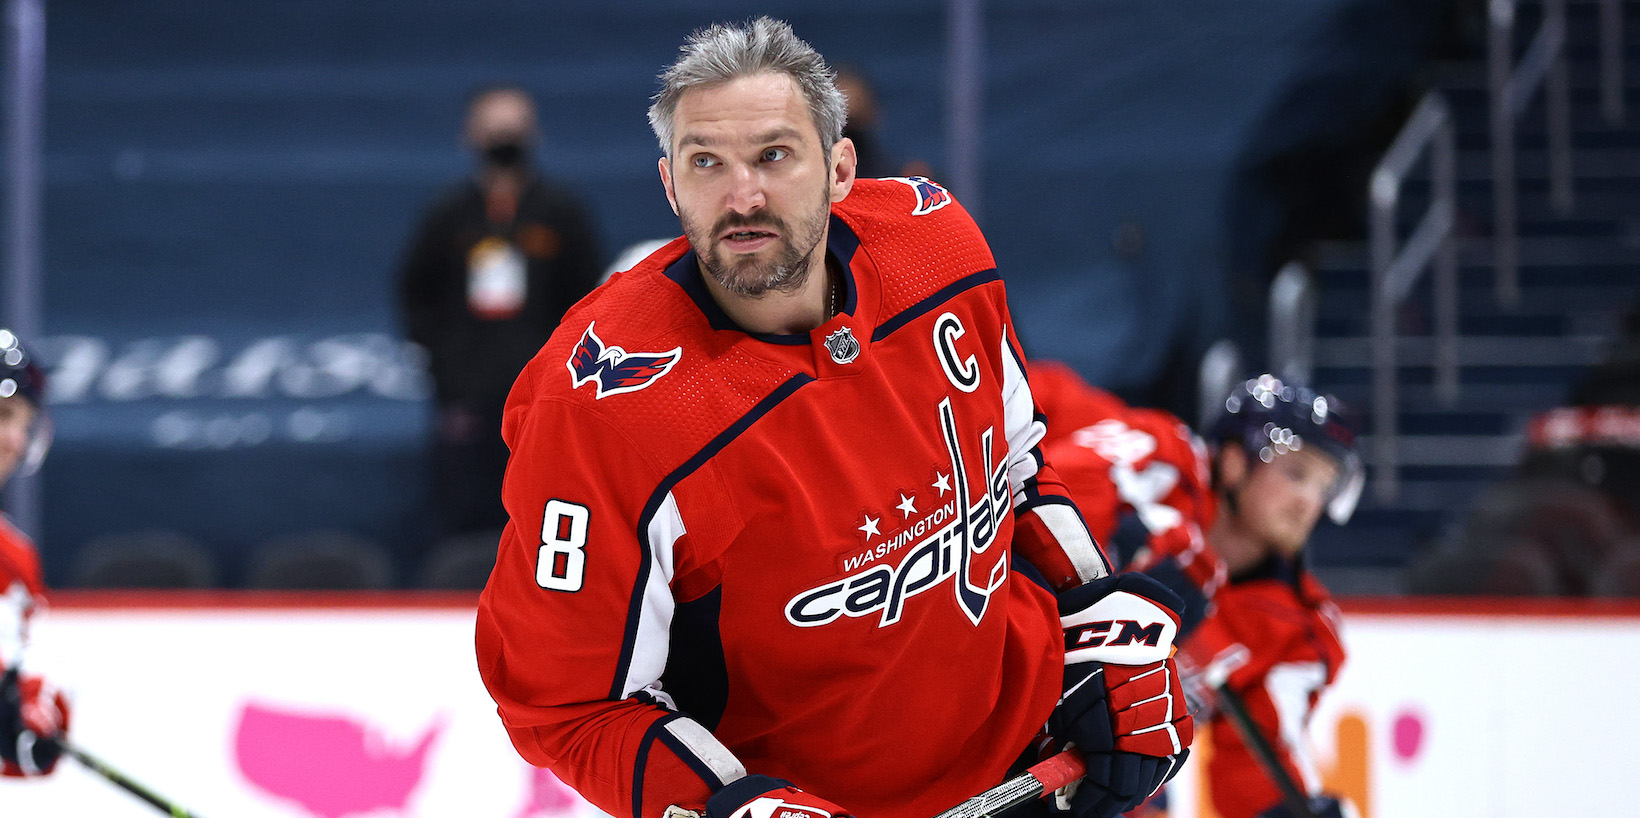 WASHINGTON, DC - MAY 17: Alex Ovechkin #8 of the Washington Capitals skates during warm ups before the game against the Boston Bruins in Game Two of the First Round of the 2021 Stanley Cup Playoffs at Capital One Arena on May 17, 2021 in Washington, DC. (Photo by Elsa/Getty Images)